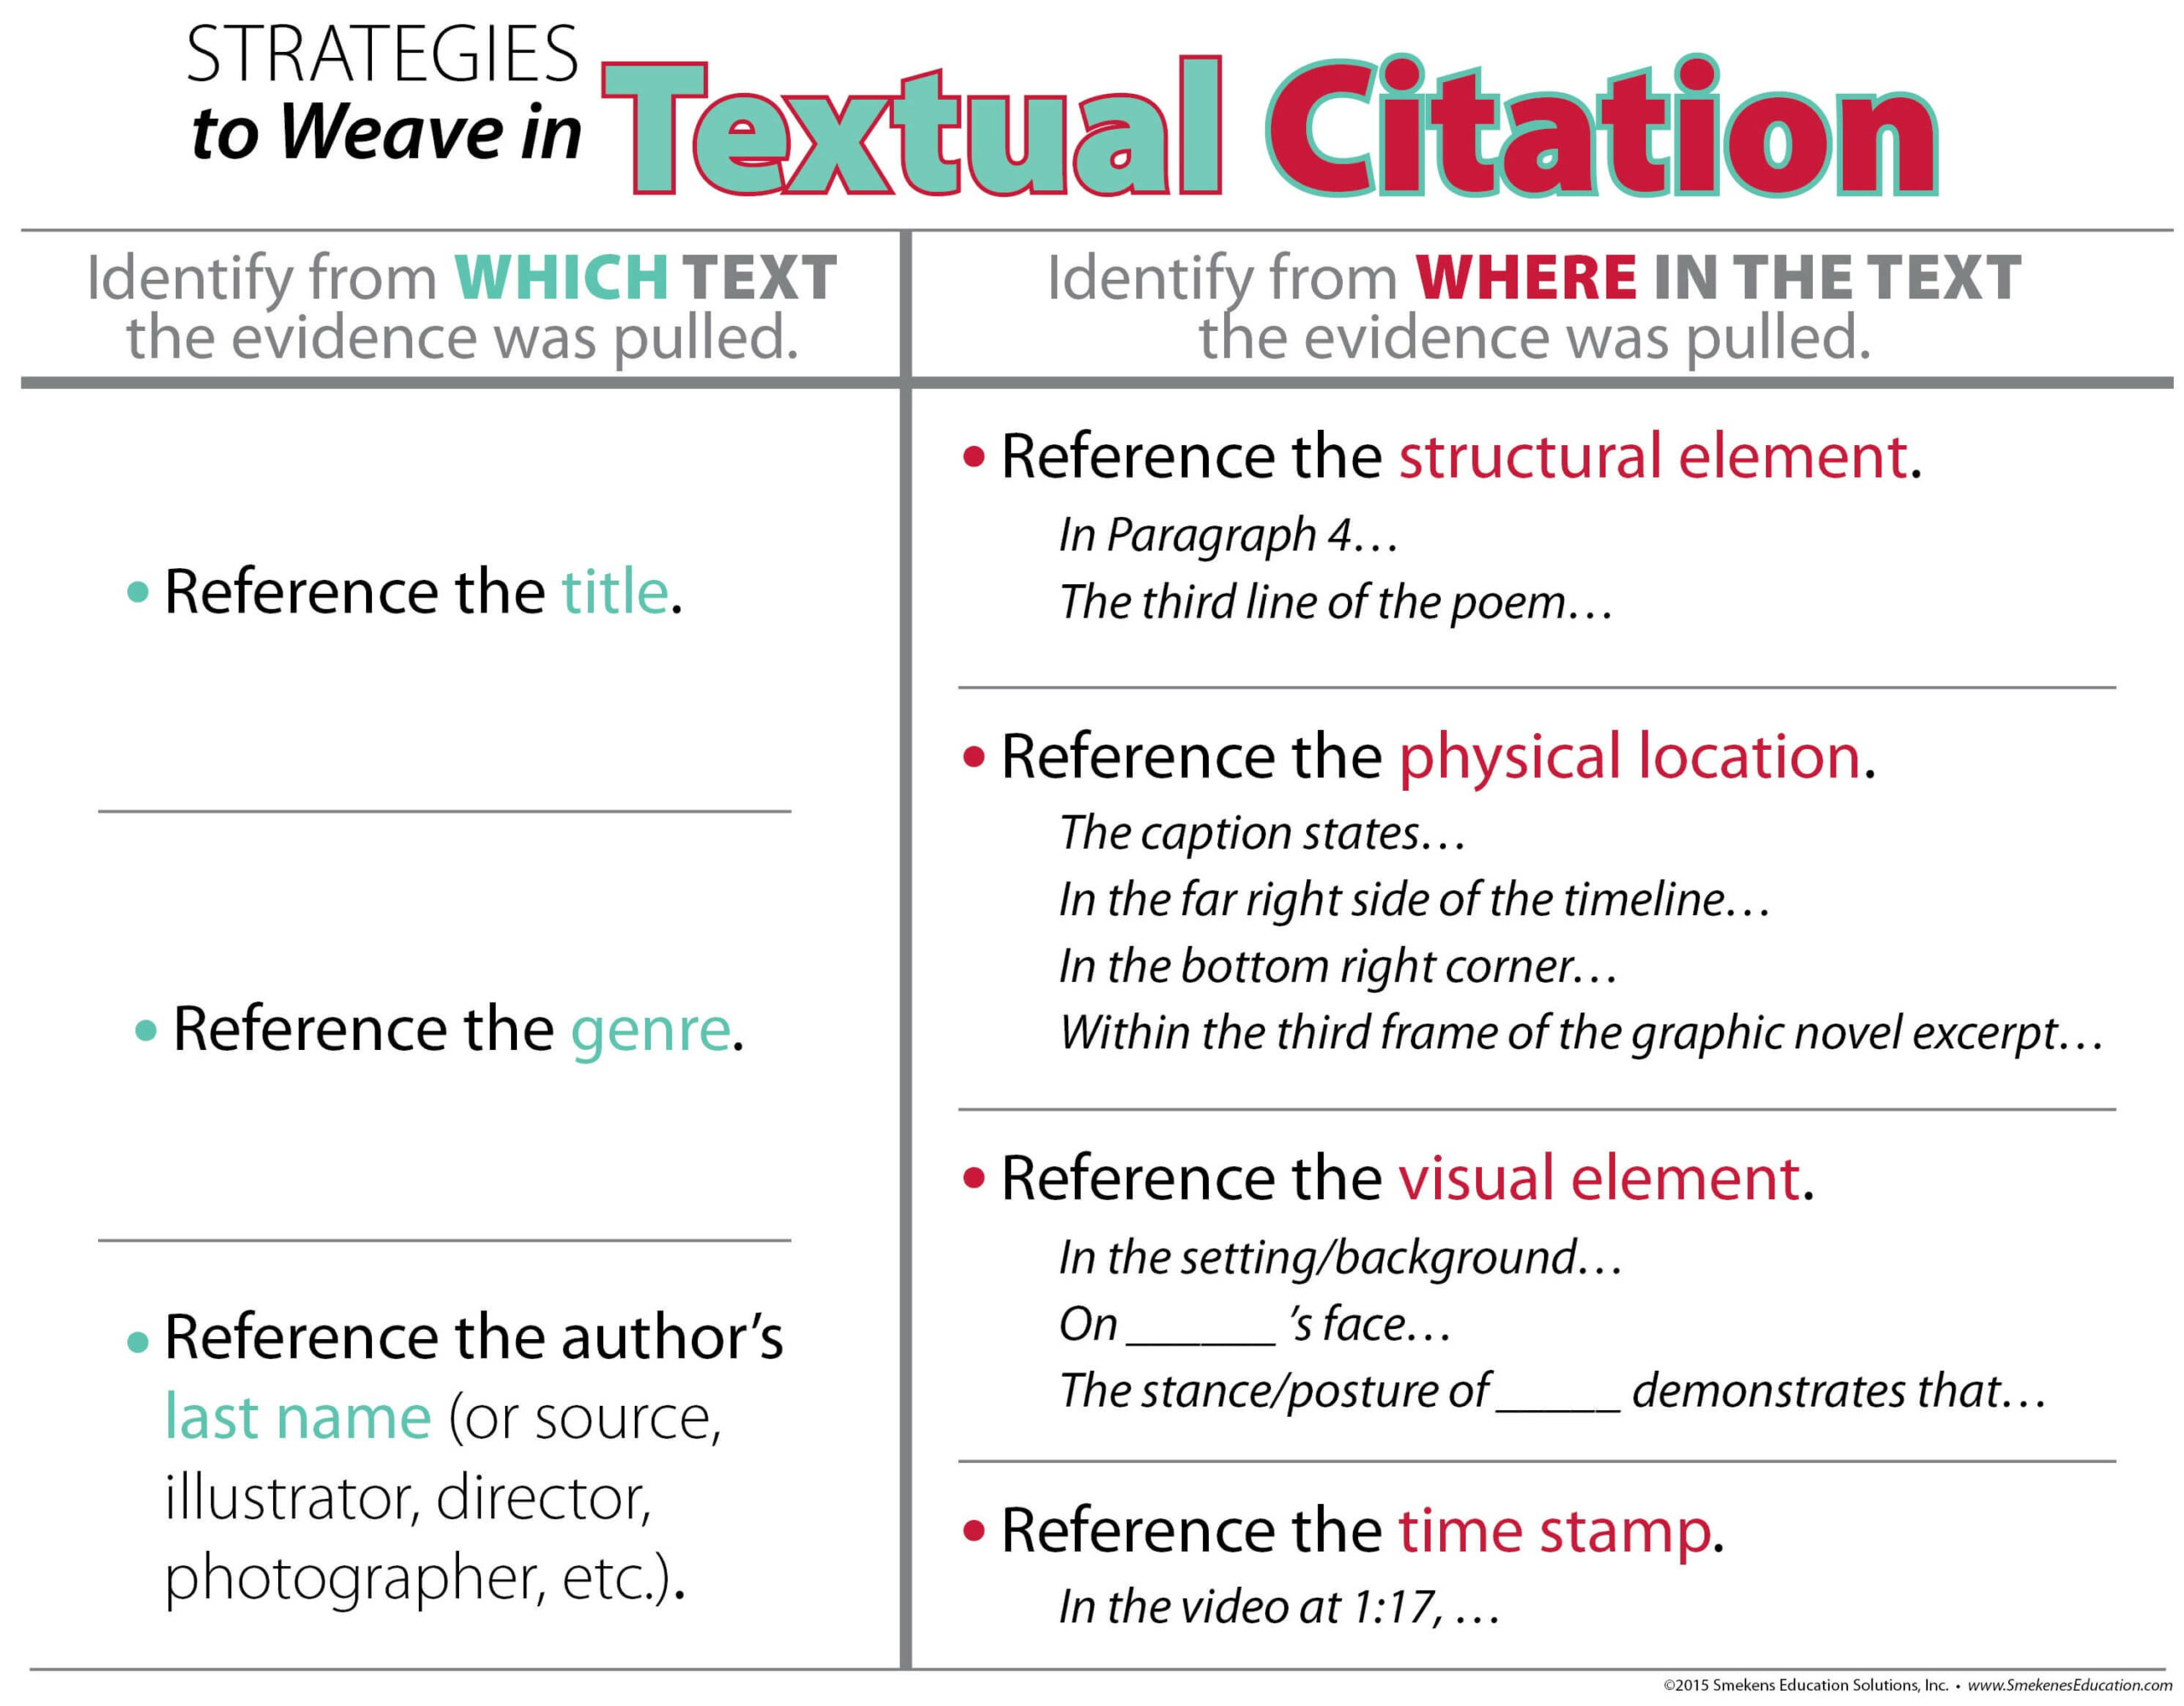 Weave in Textual Citations Downloadable Resource